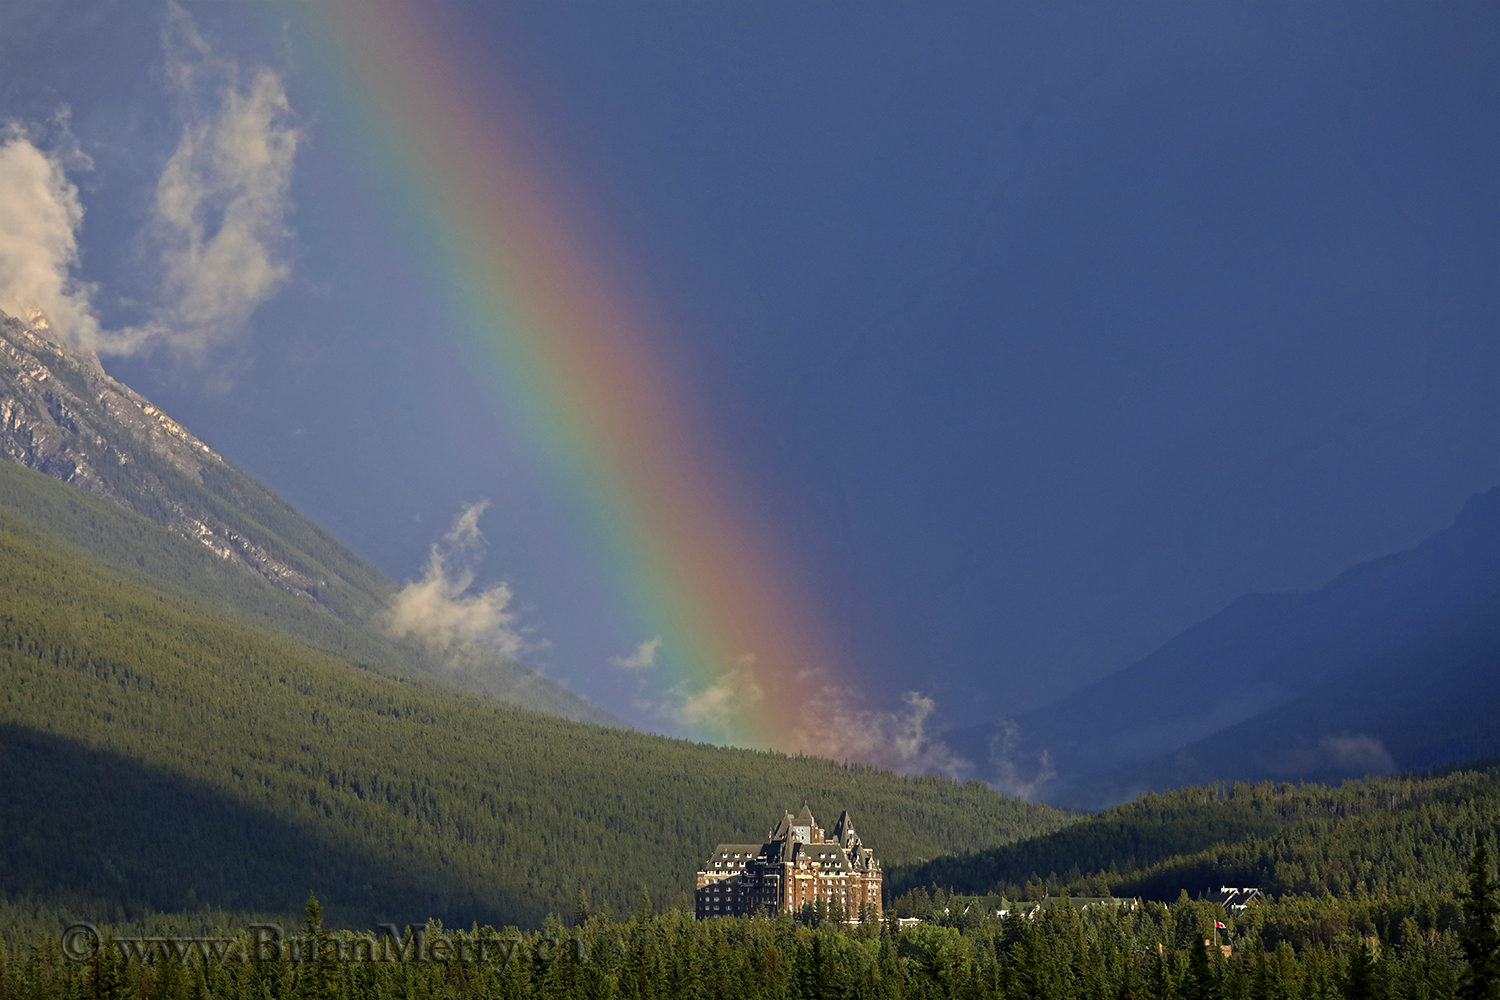 Rainbow over the Banff Springs Hotel from Mount Norquay